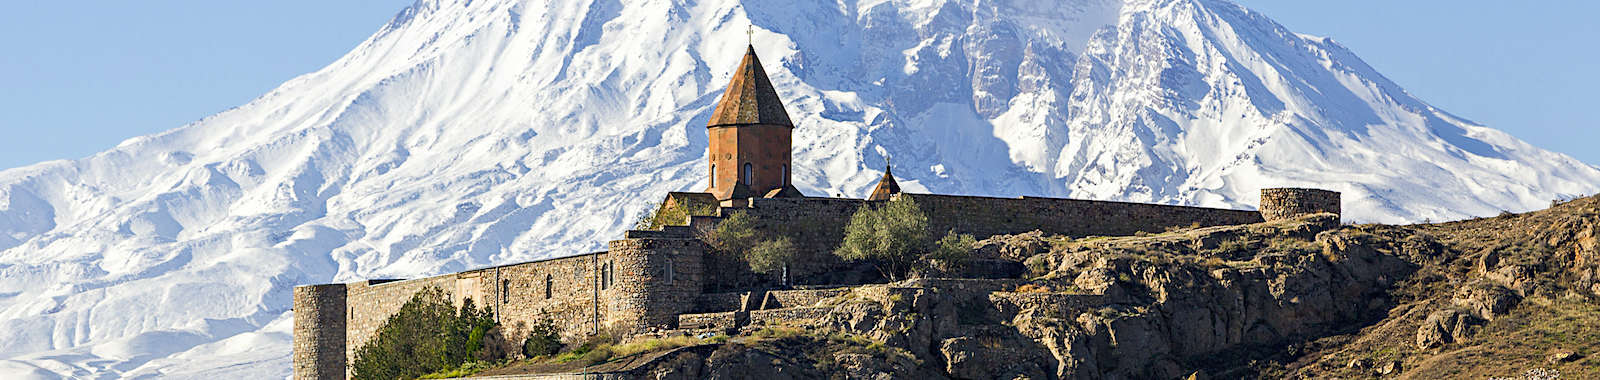 Witness the beautiful view of Khor Virap and Mount Ararat on a luxury private holiday to Armenia